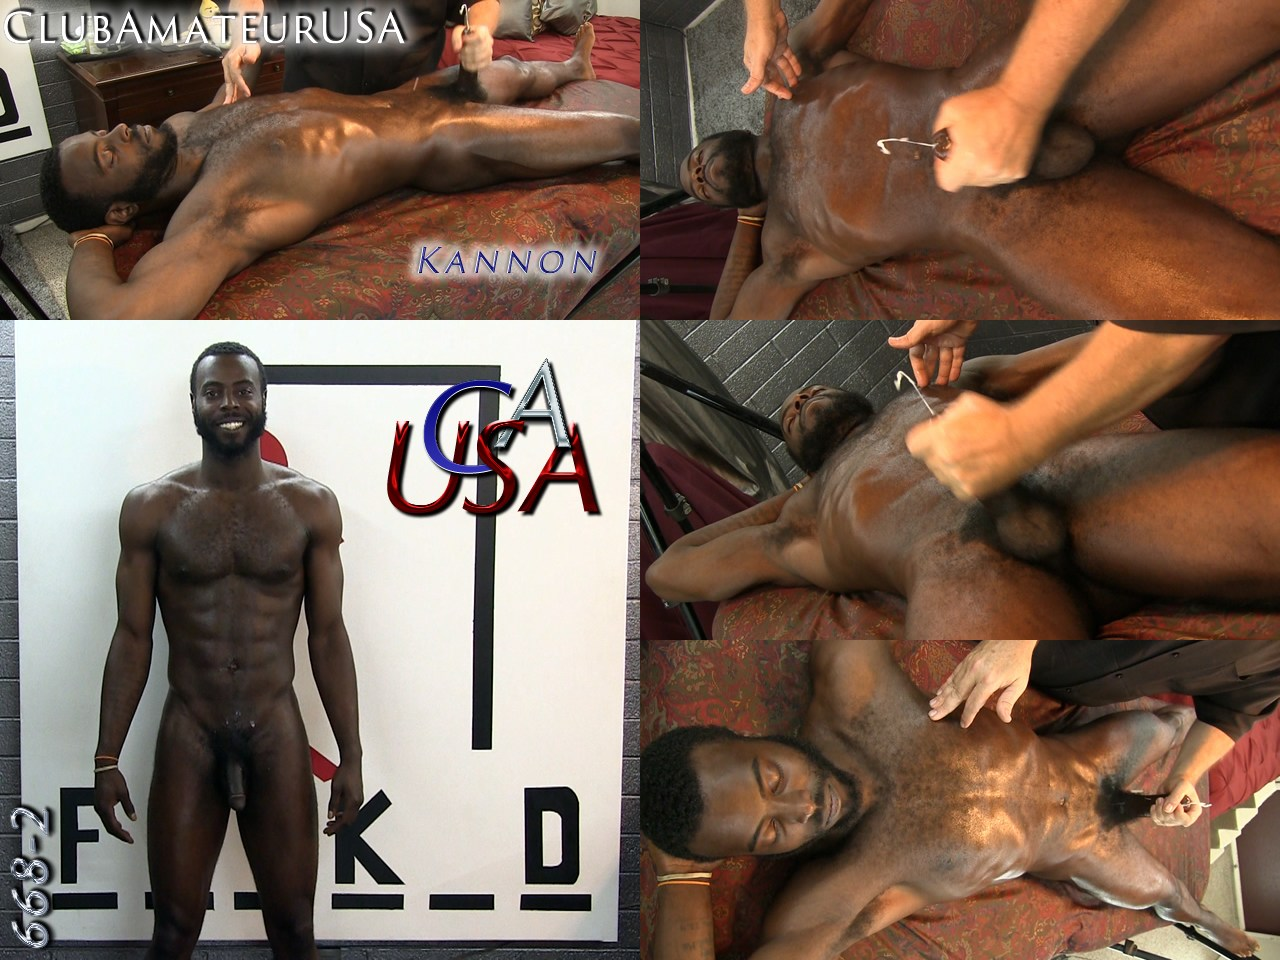 Download or Stream CAUSA 668 Kannon - 2 of 2 - Click Here Now